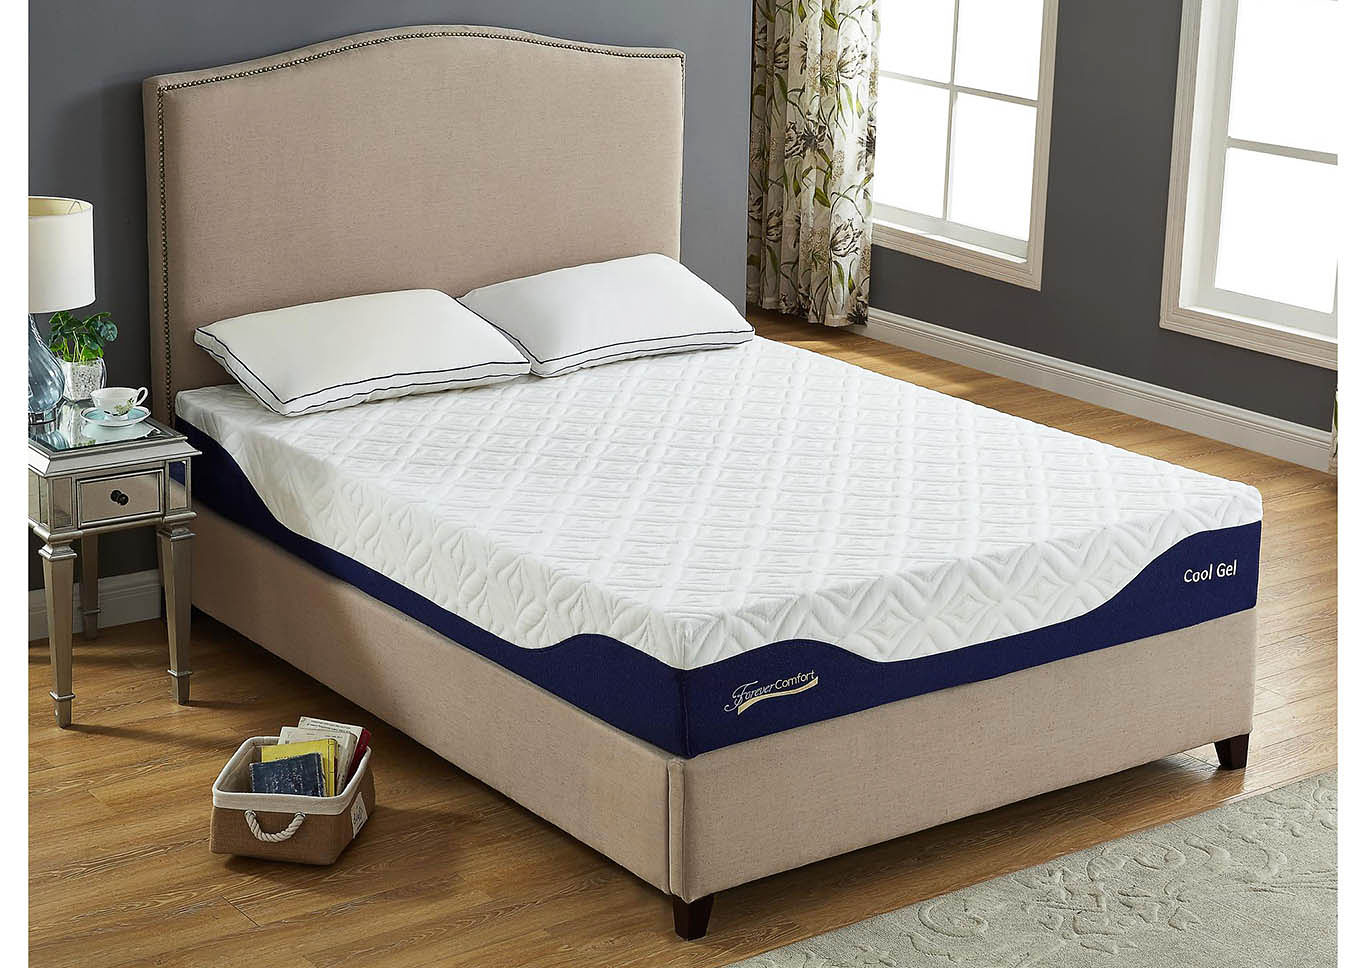 10 Gel Memory Foam King Size Mattress,Global Trading